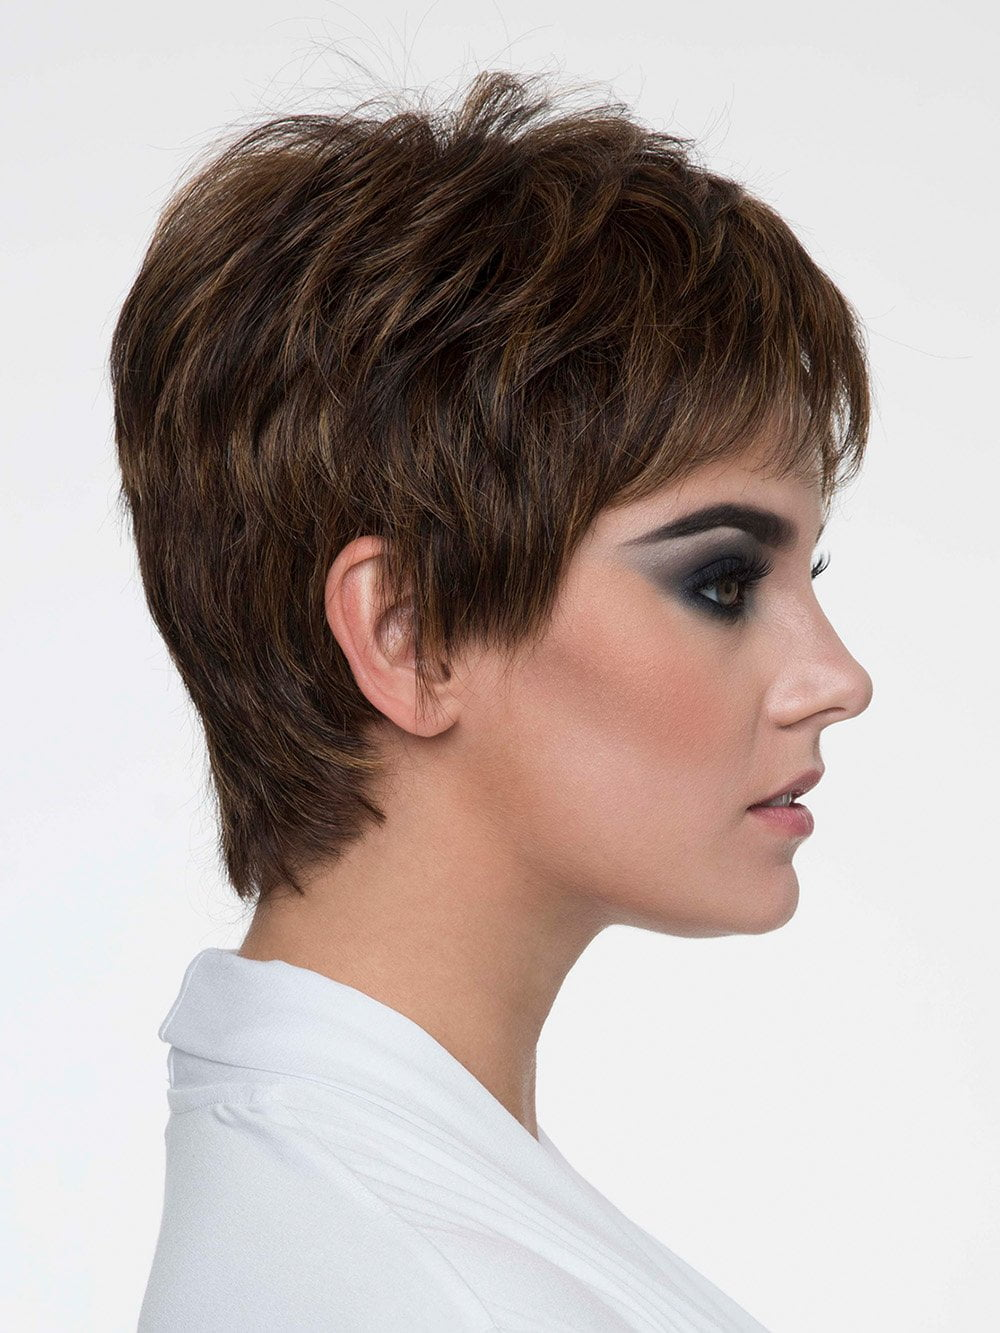 Always be in style with her classic pixie cut and sassy, piecey bangs